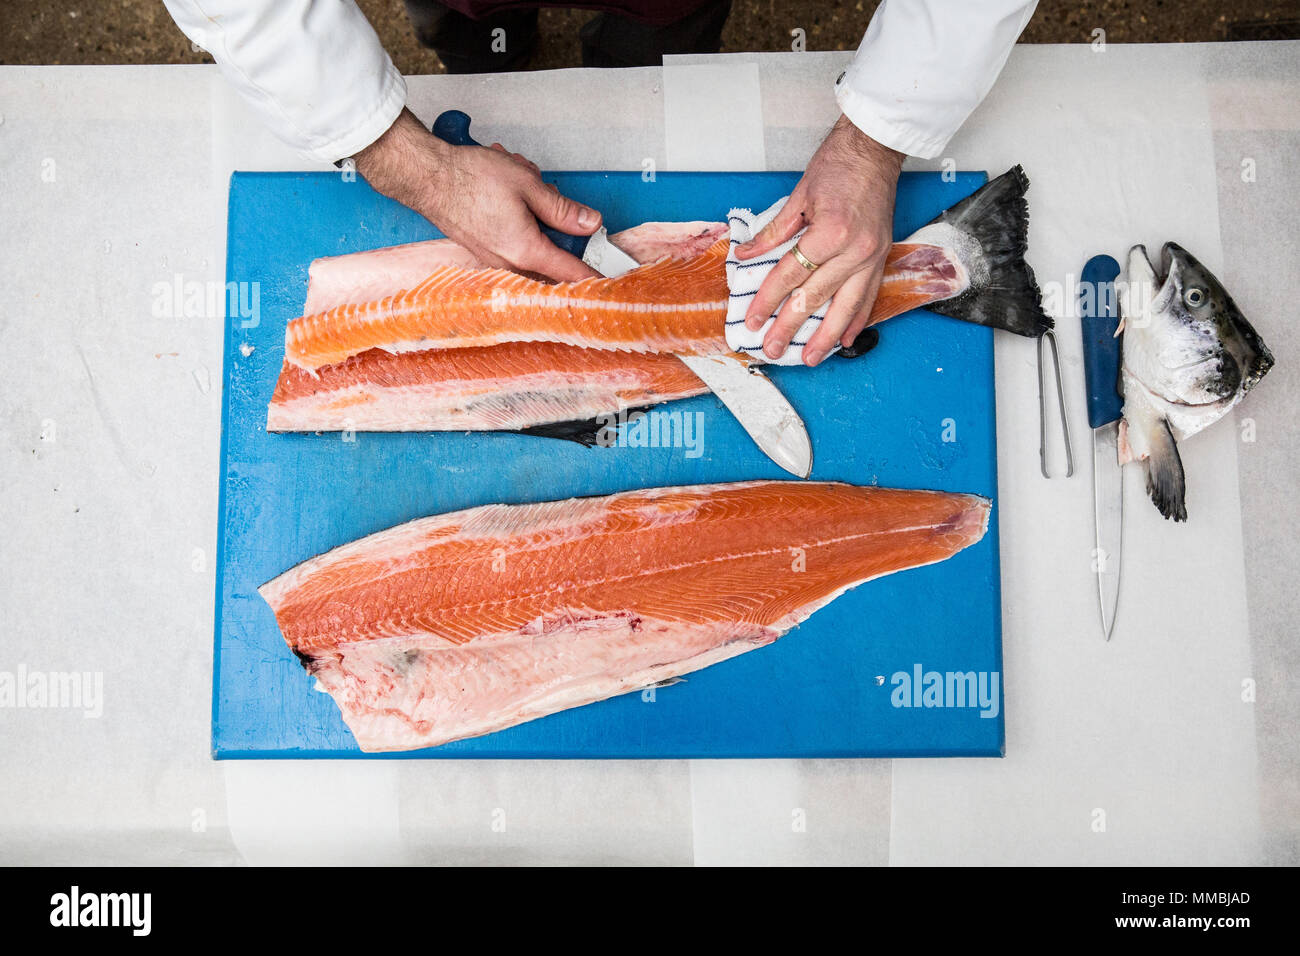 High angle close up of fishmonger standing at a table, cutting and filleting fresh salmon on blue chopping board. - Stock Image